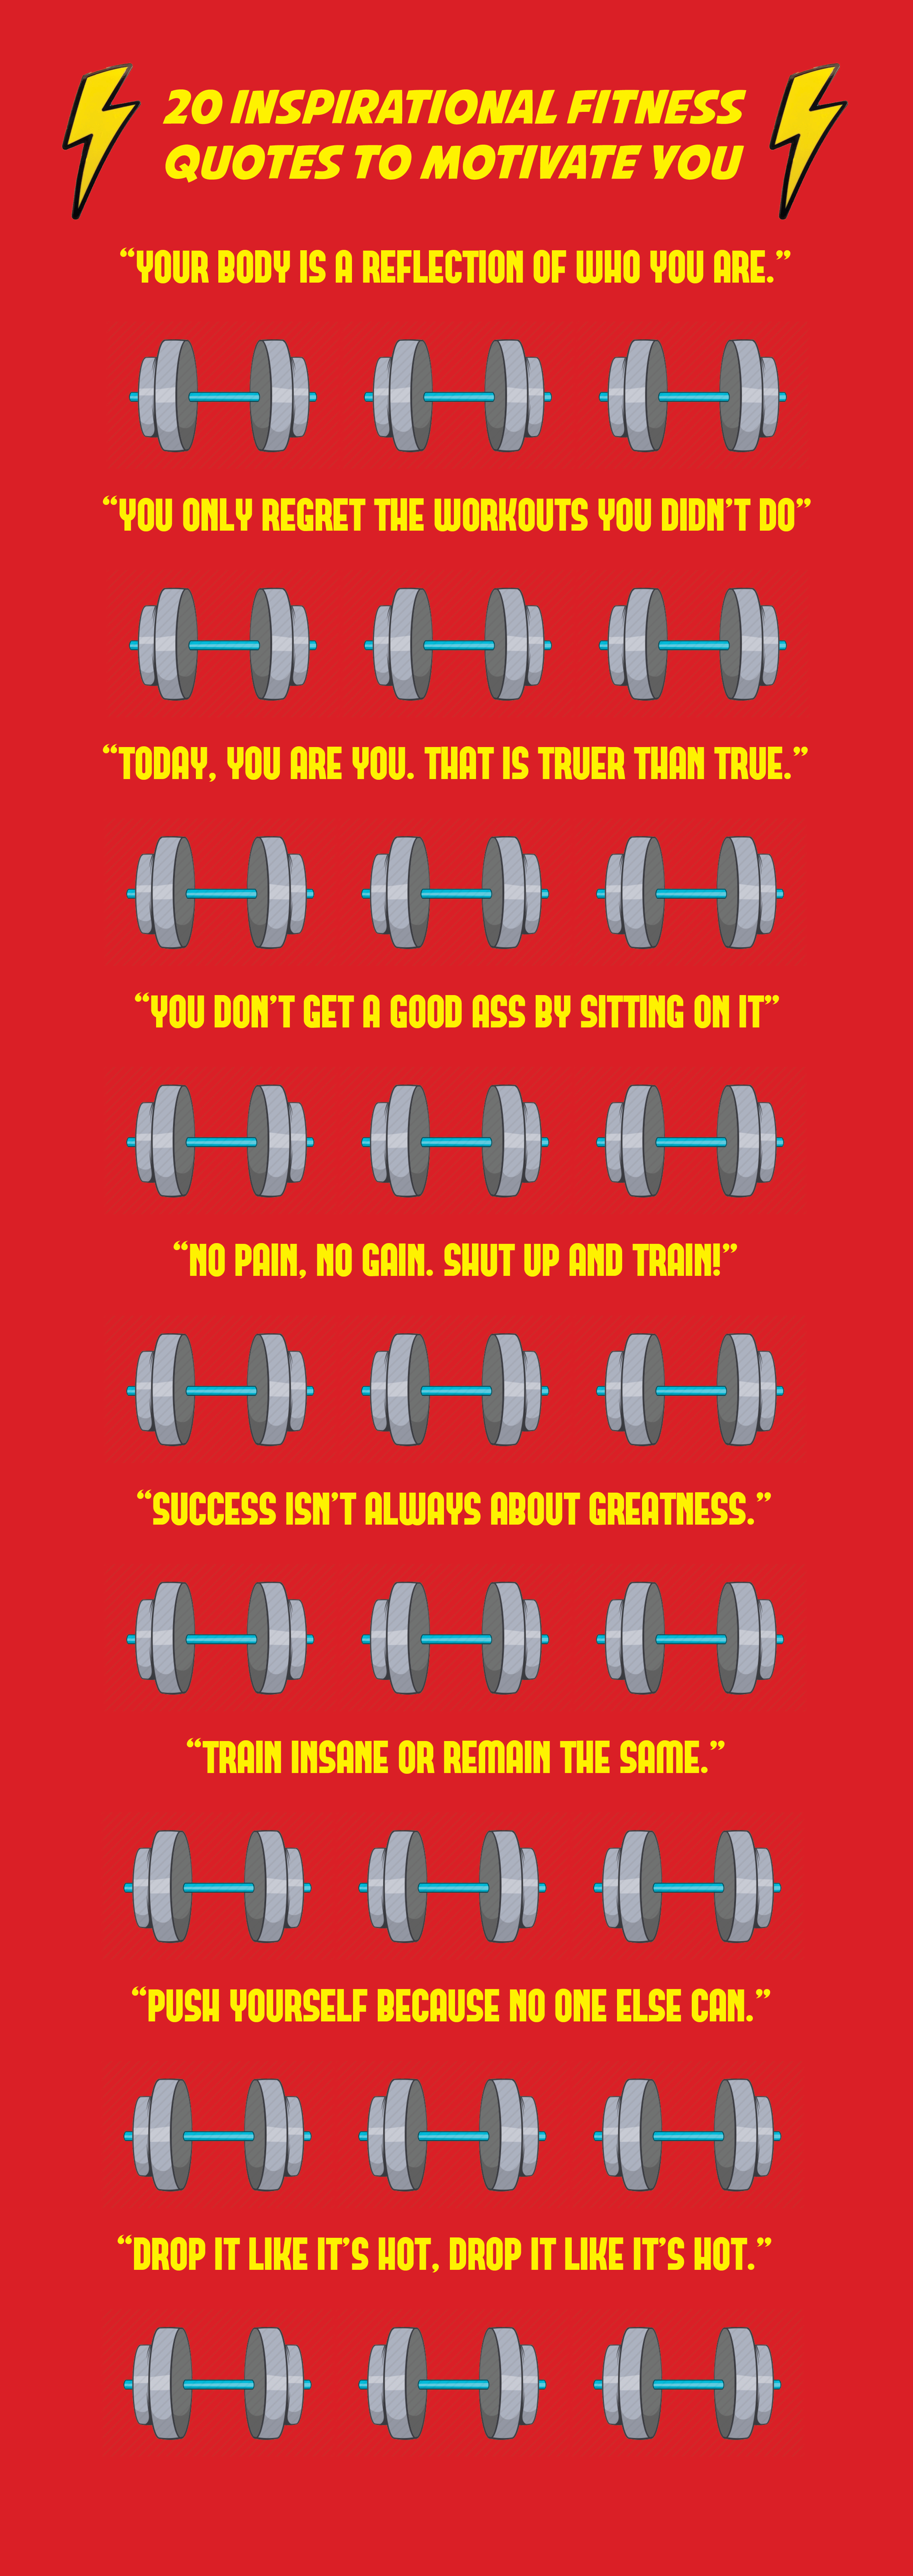 Fitness Quotes Langst.jpg